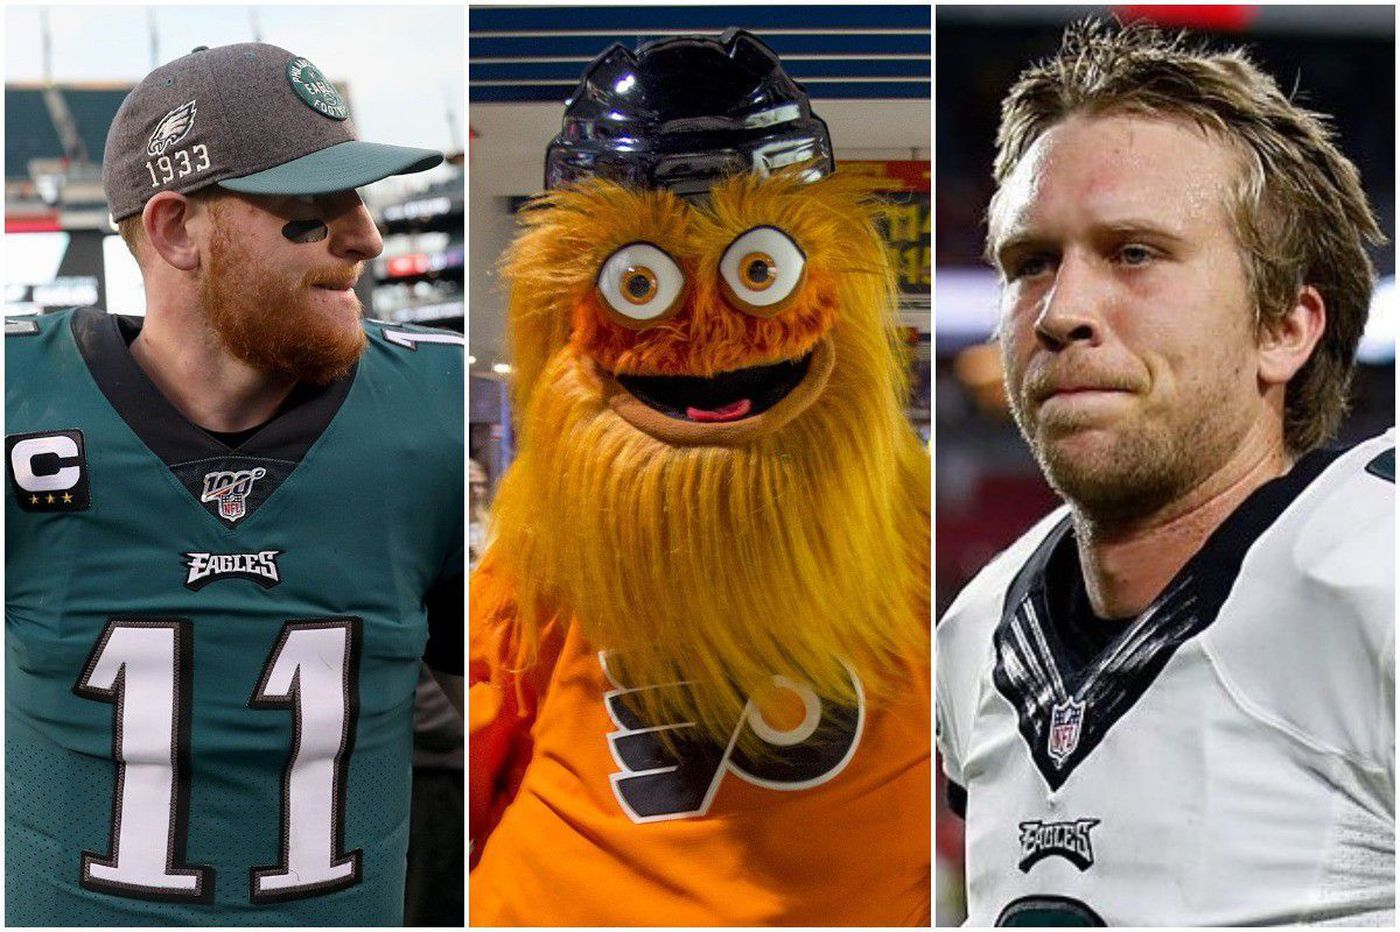 Nick Foles beat Carson Wentz in a Philadelphia election landslide. But Gritty beat them both.